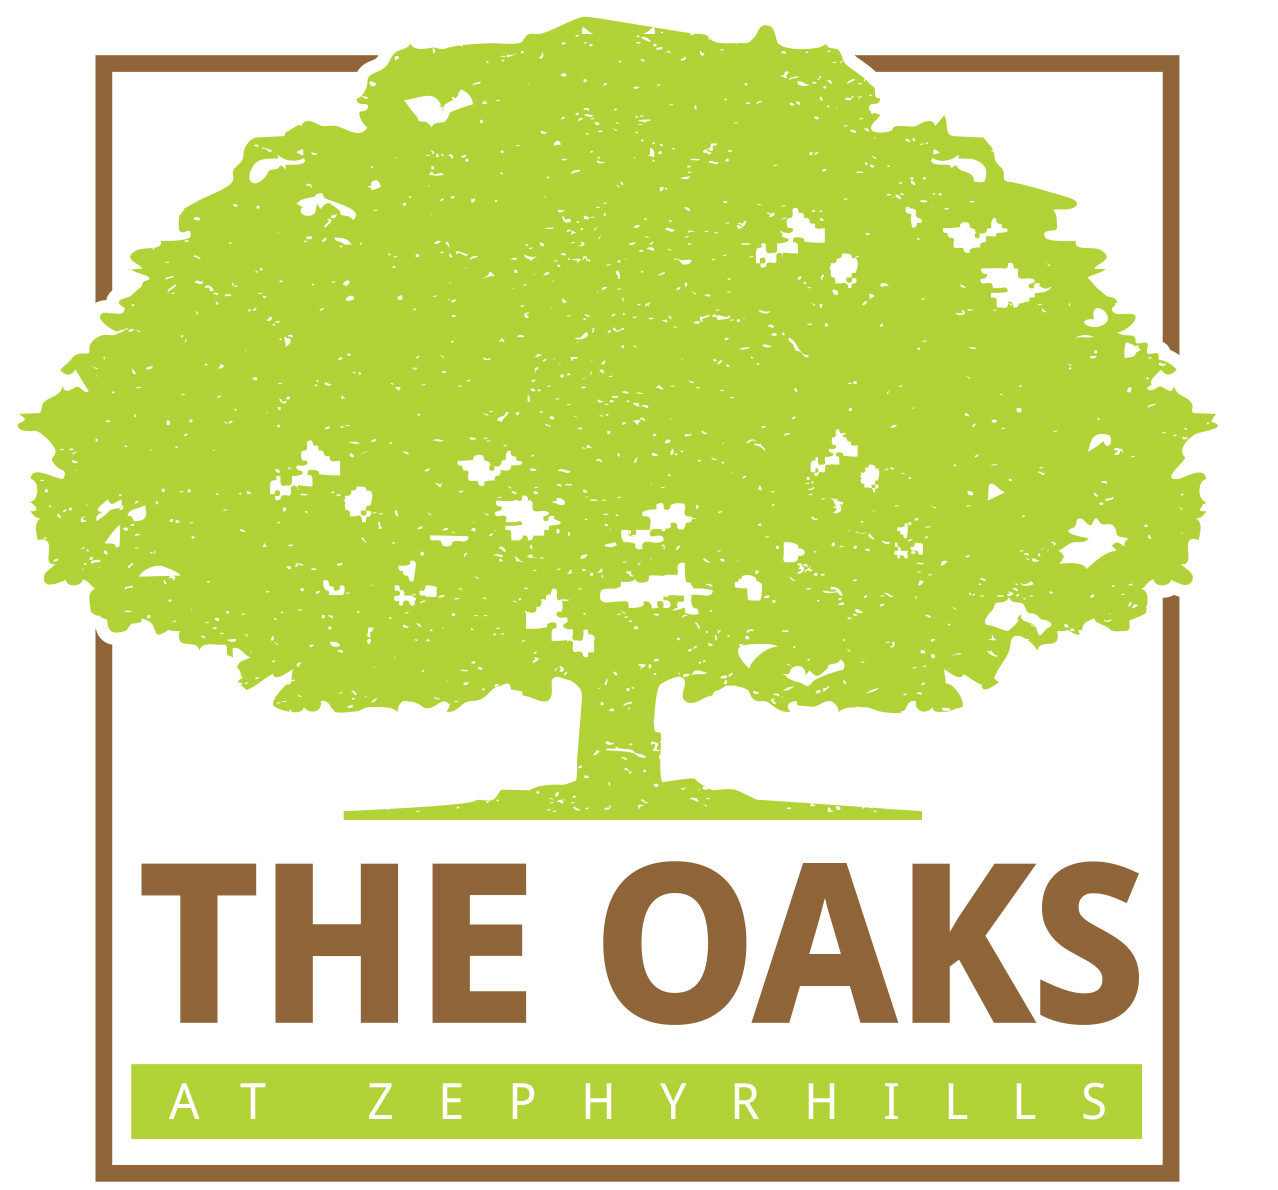 The Oaks at Zephyrhills